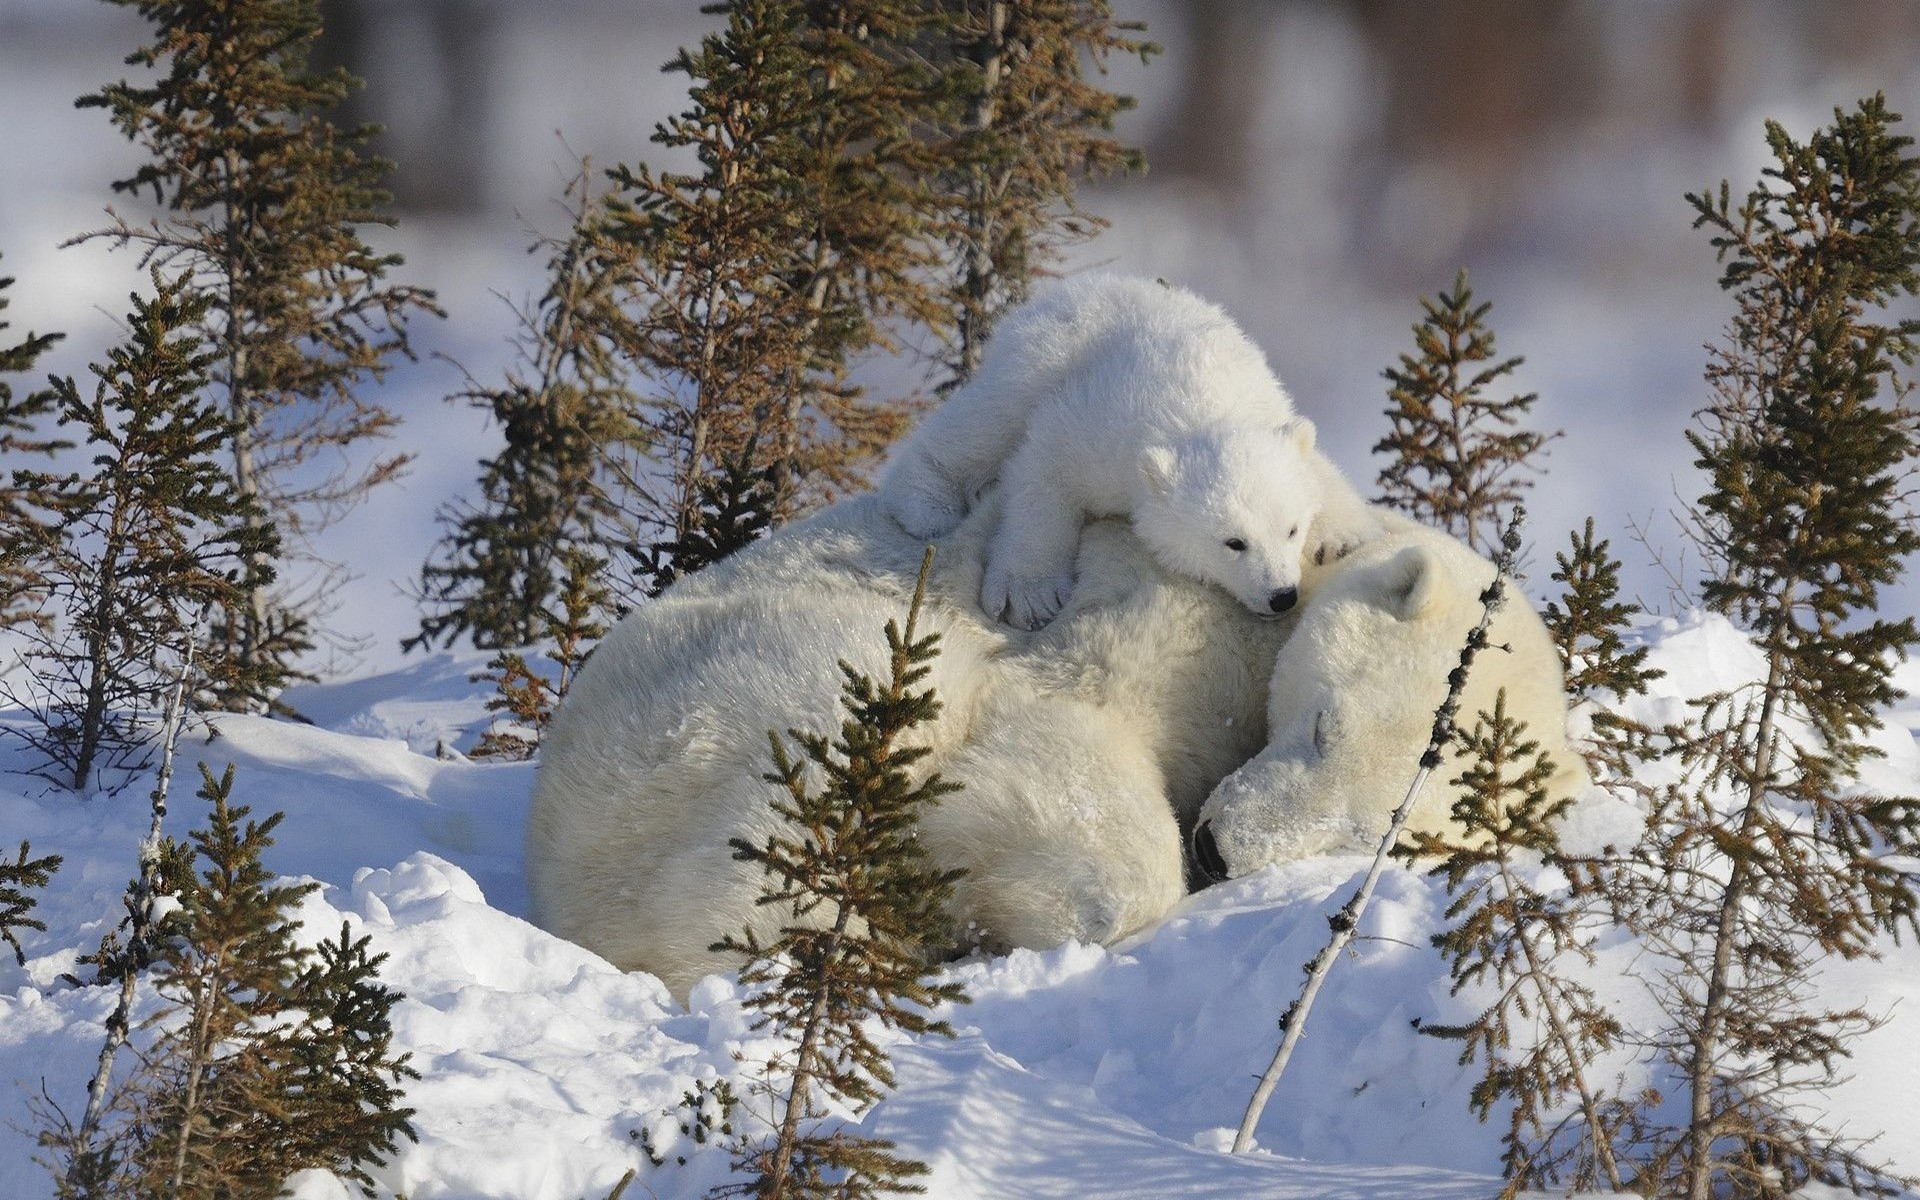 http://lisimnik.ru/wp-content/uploads/2016/01/polar-bears-animals-baby-animals-snow-sleeping-arctic-pole-1920x1200.jpg